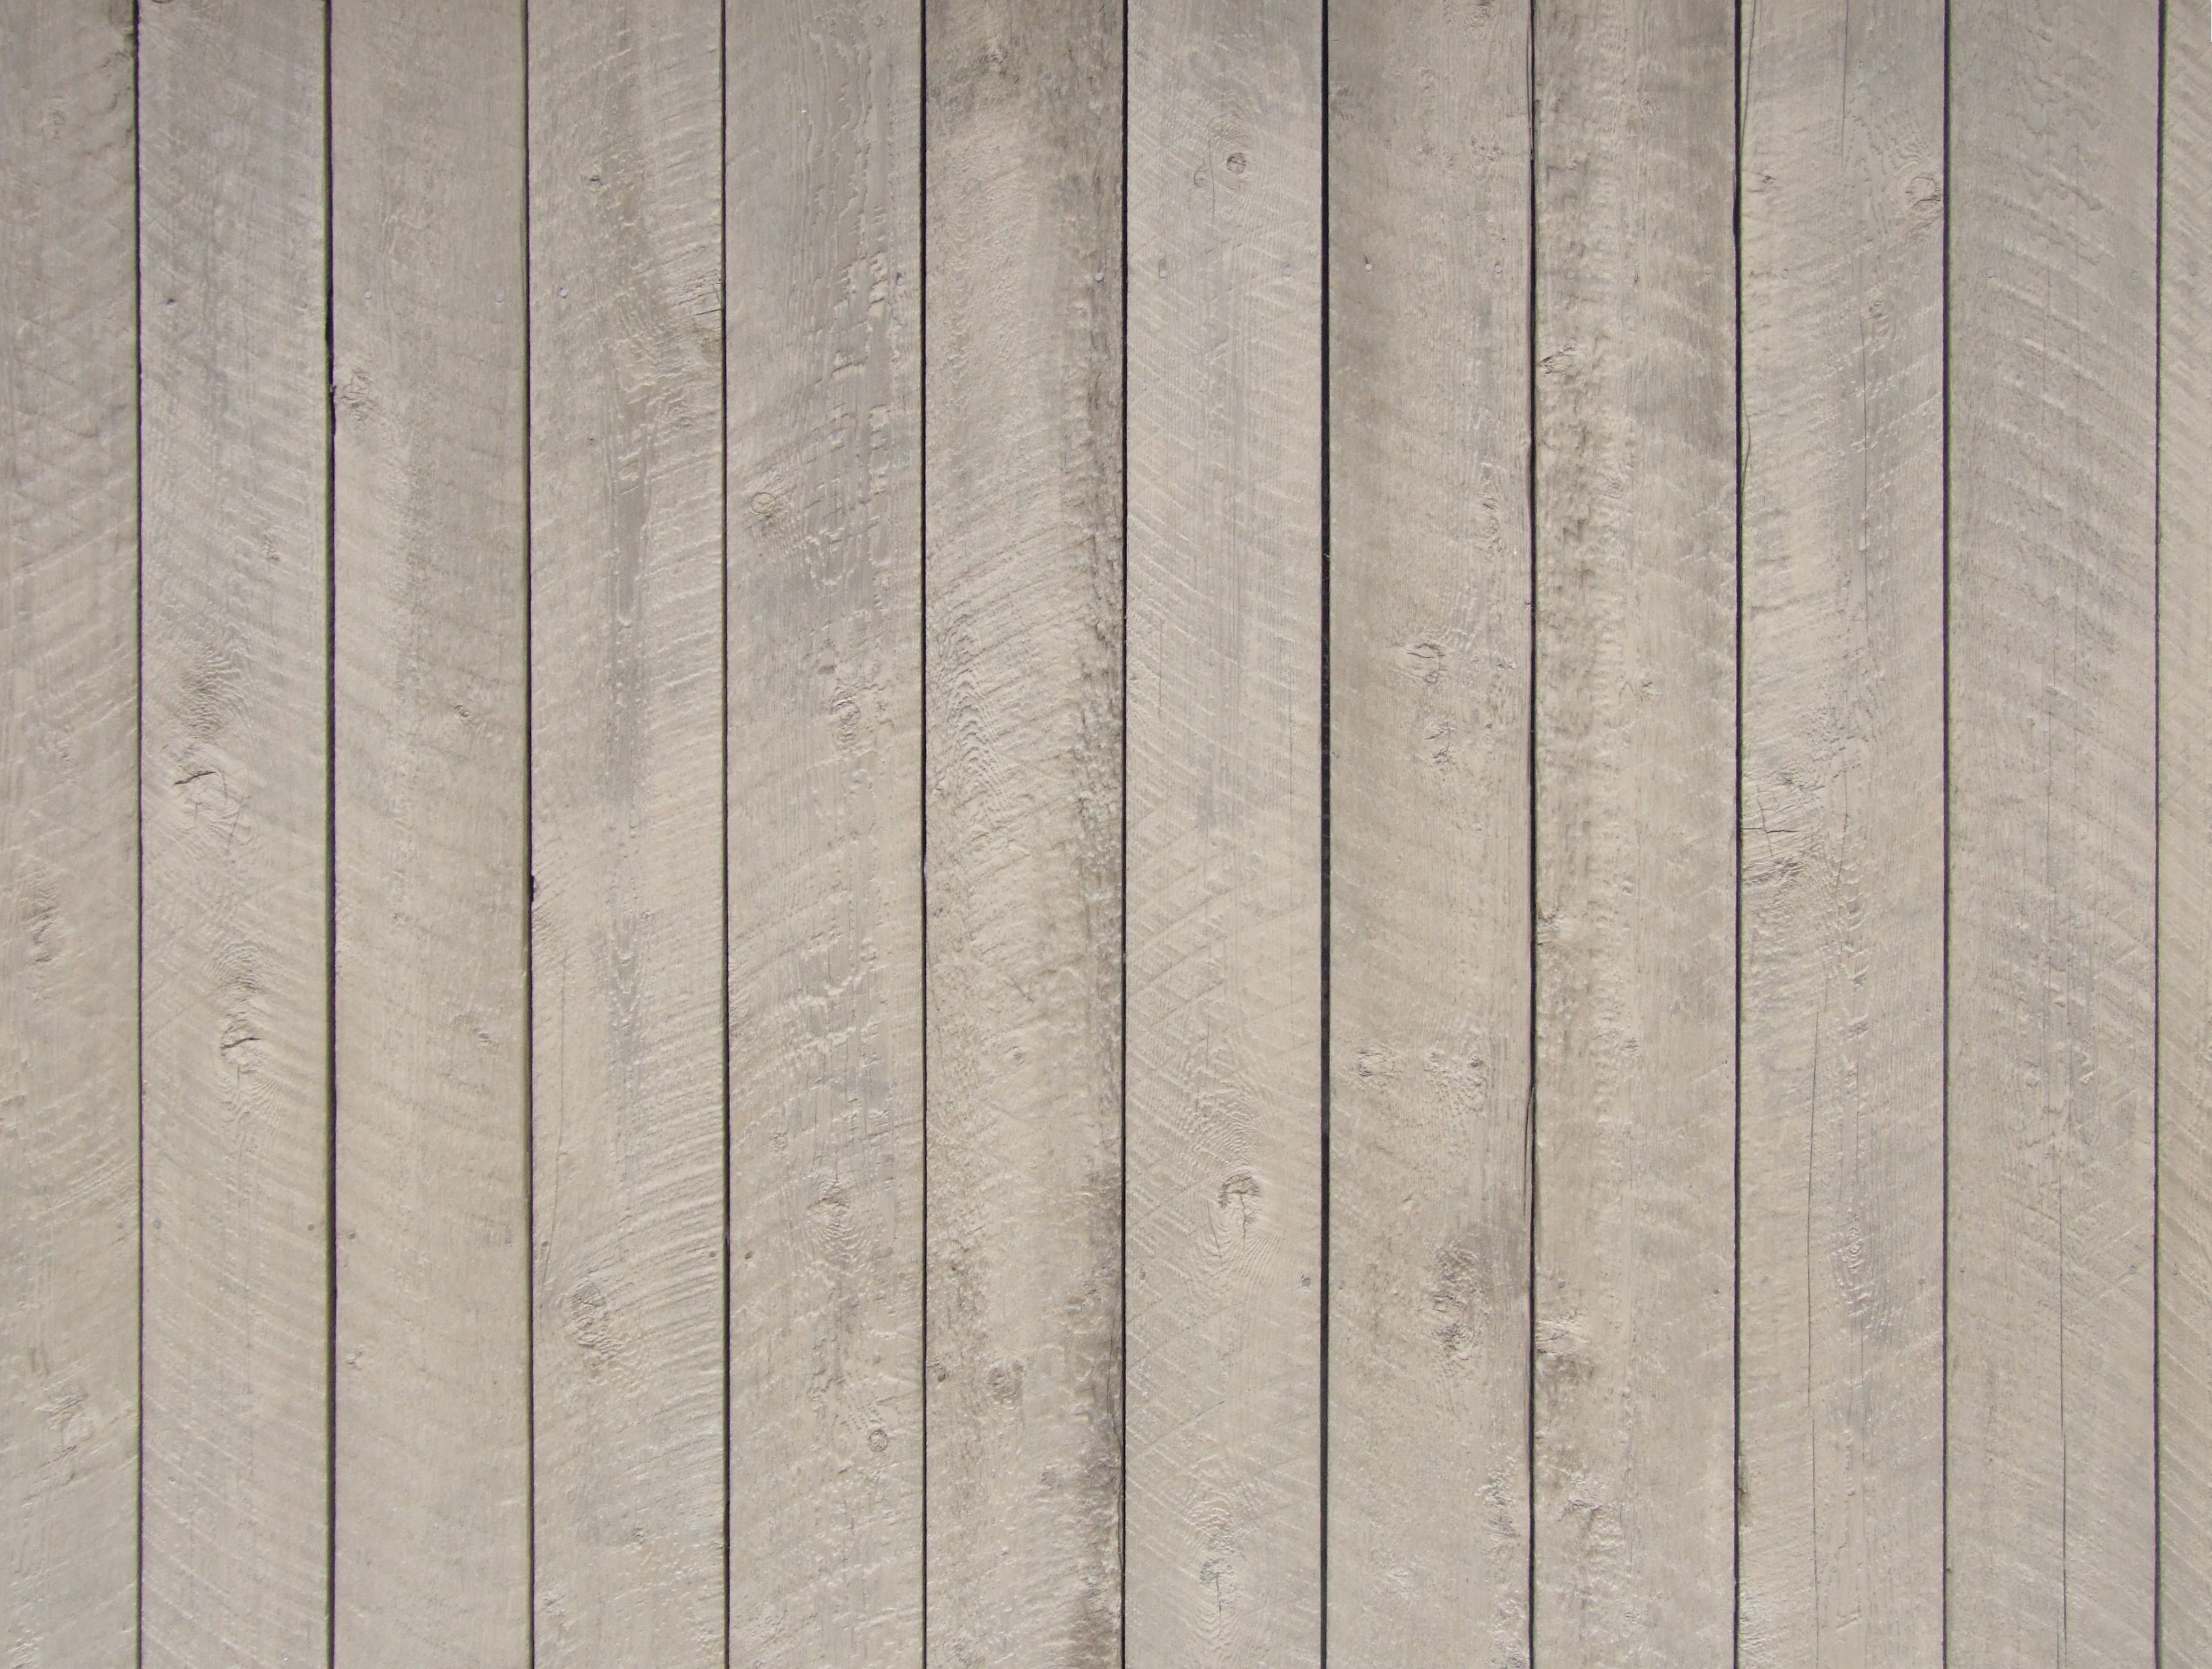 wooden boards texture background, wood | trang doawload | Pinterest ...